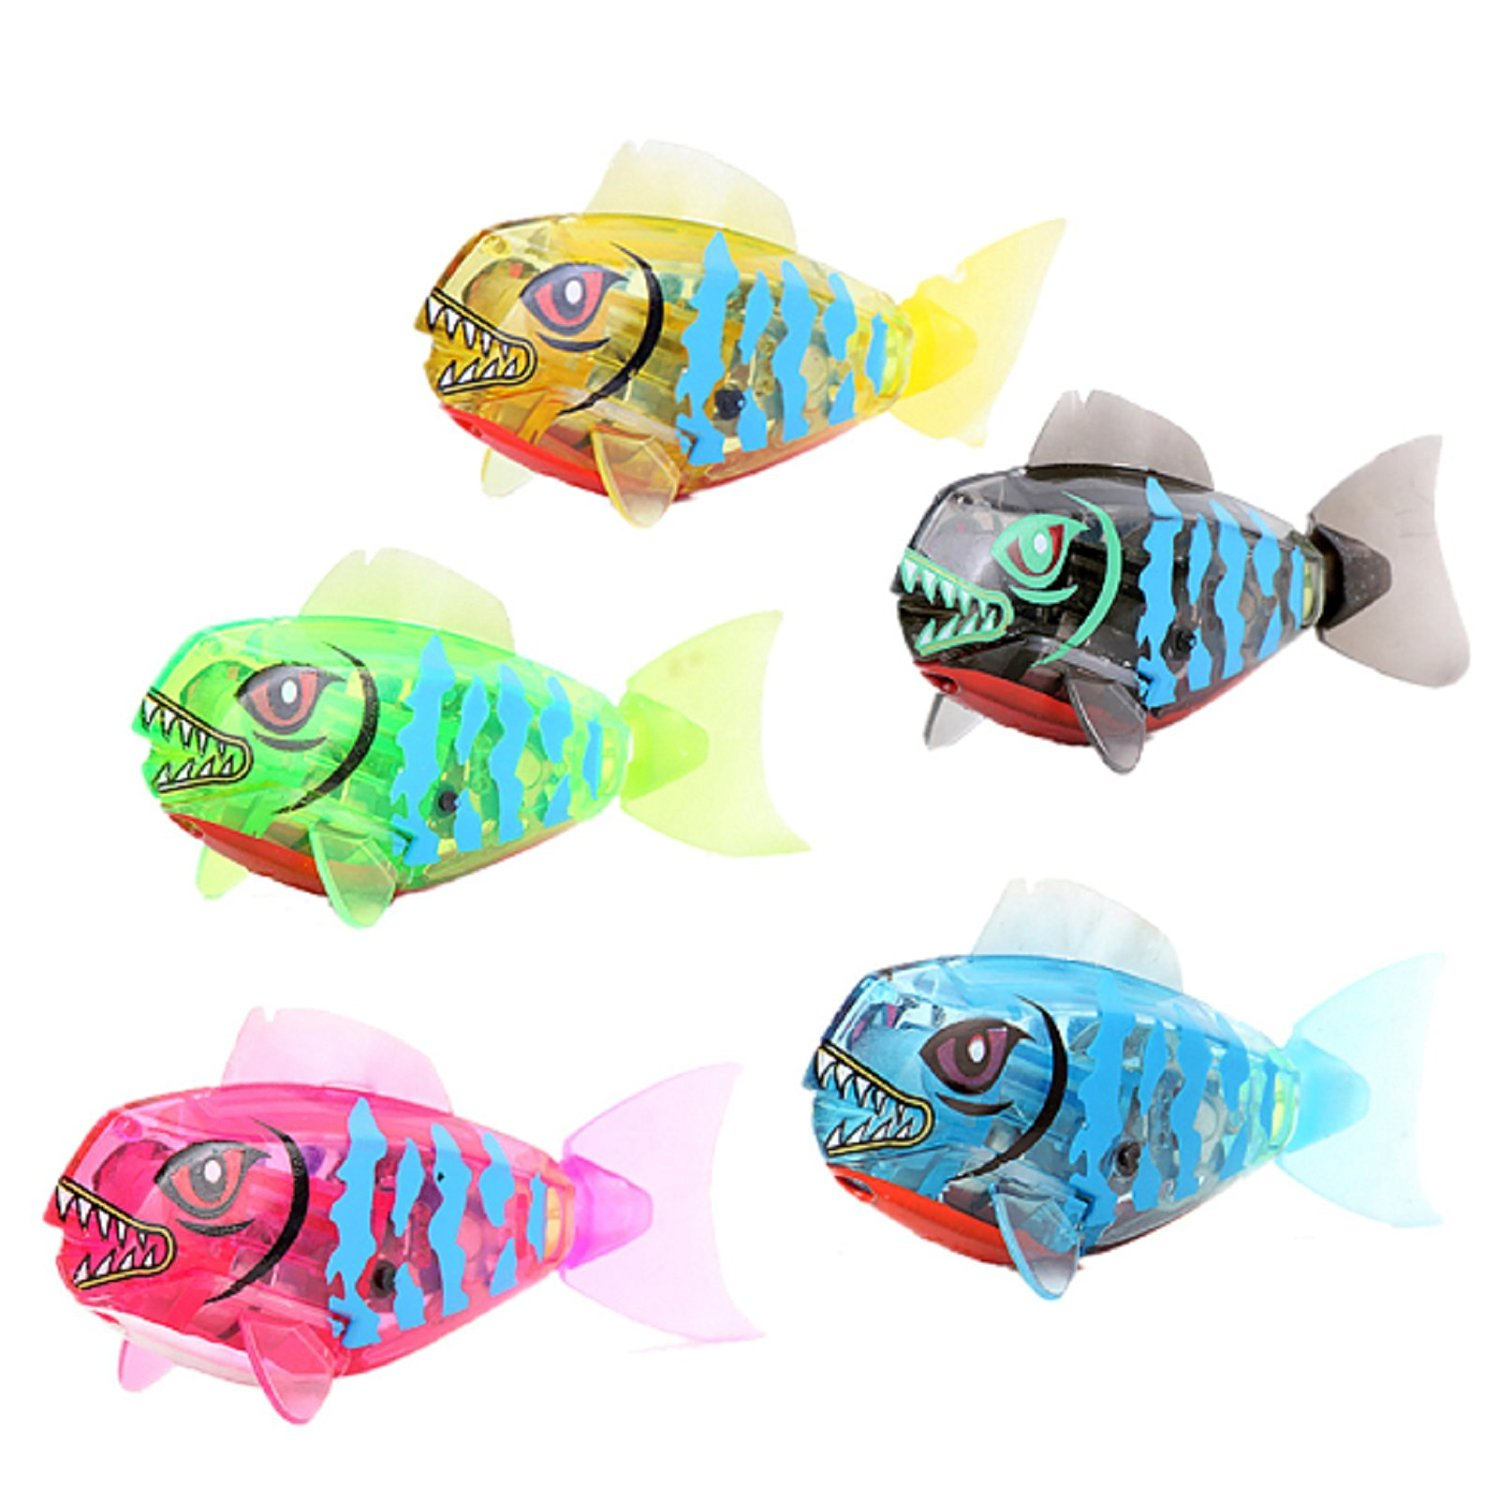 NEW! Cute Robofish Activated Battery Powered Robo Fish Toy Childen Kids Bath Toy Pet Electronic Robotic Fish Toy Random Color